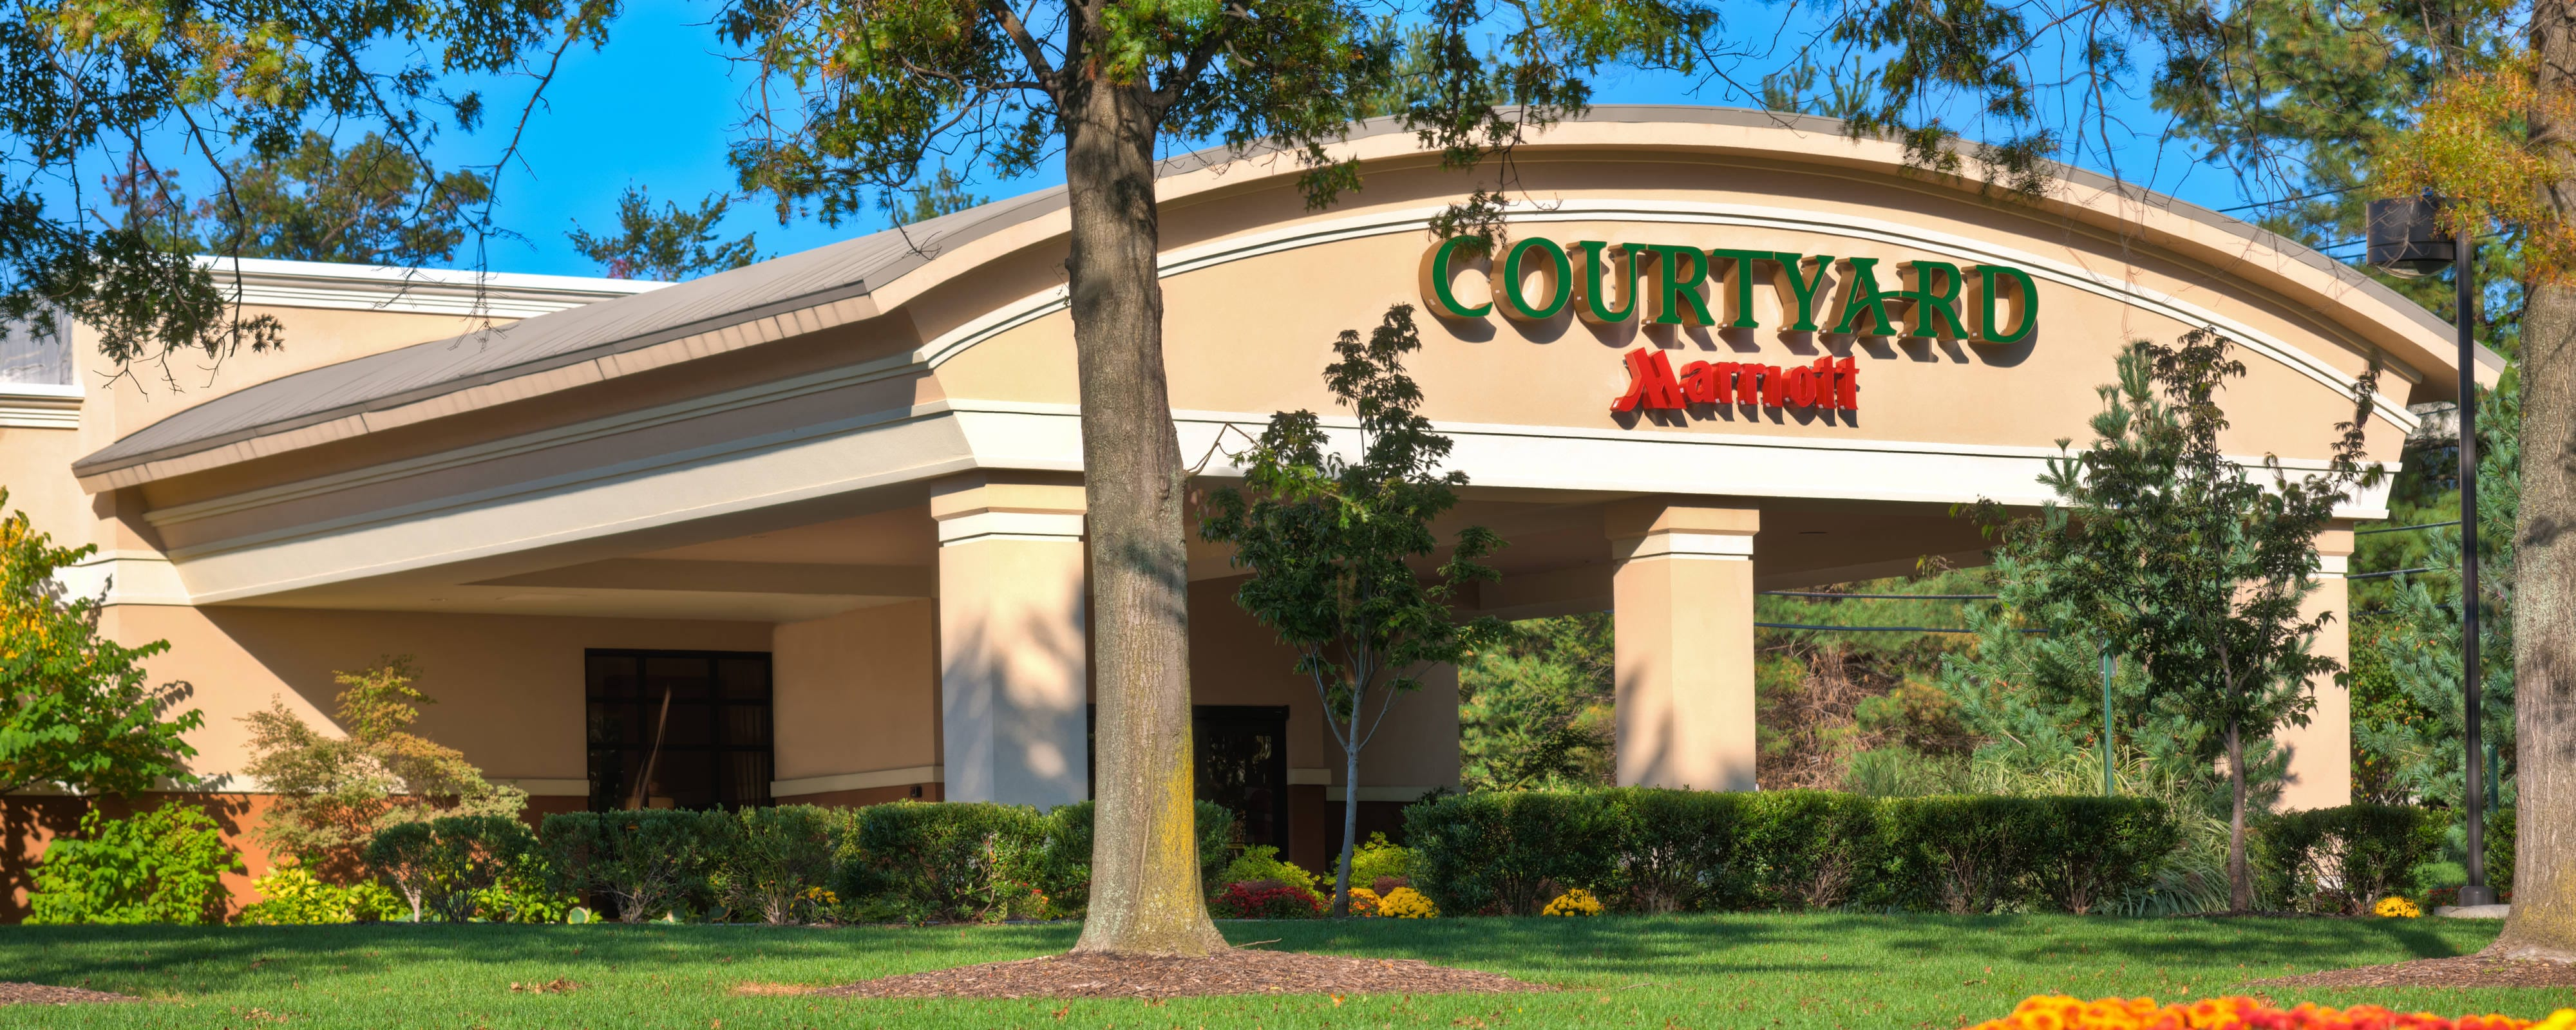 how to get to courtyard montvale map of montvale rh marriott com